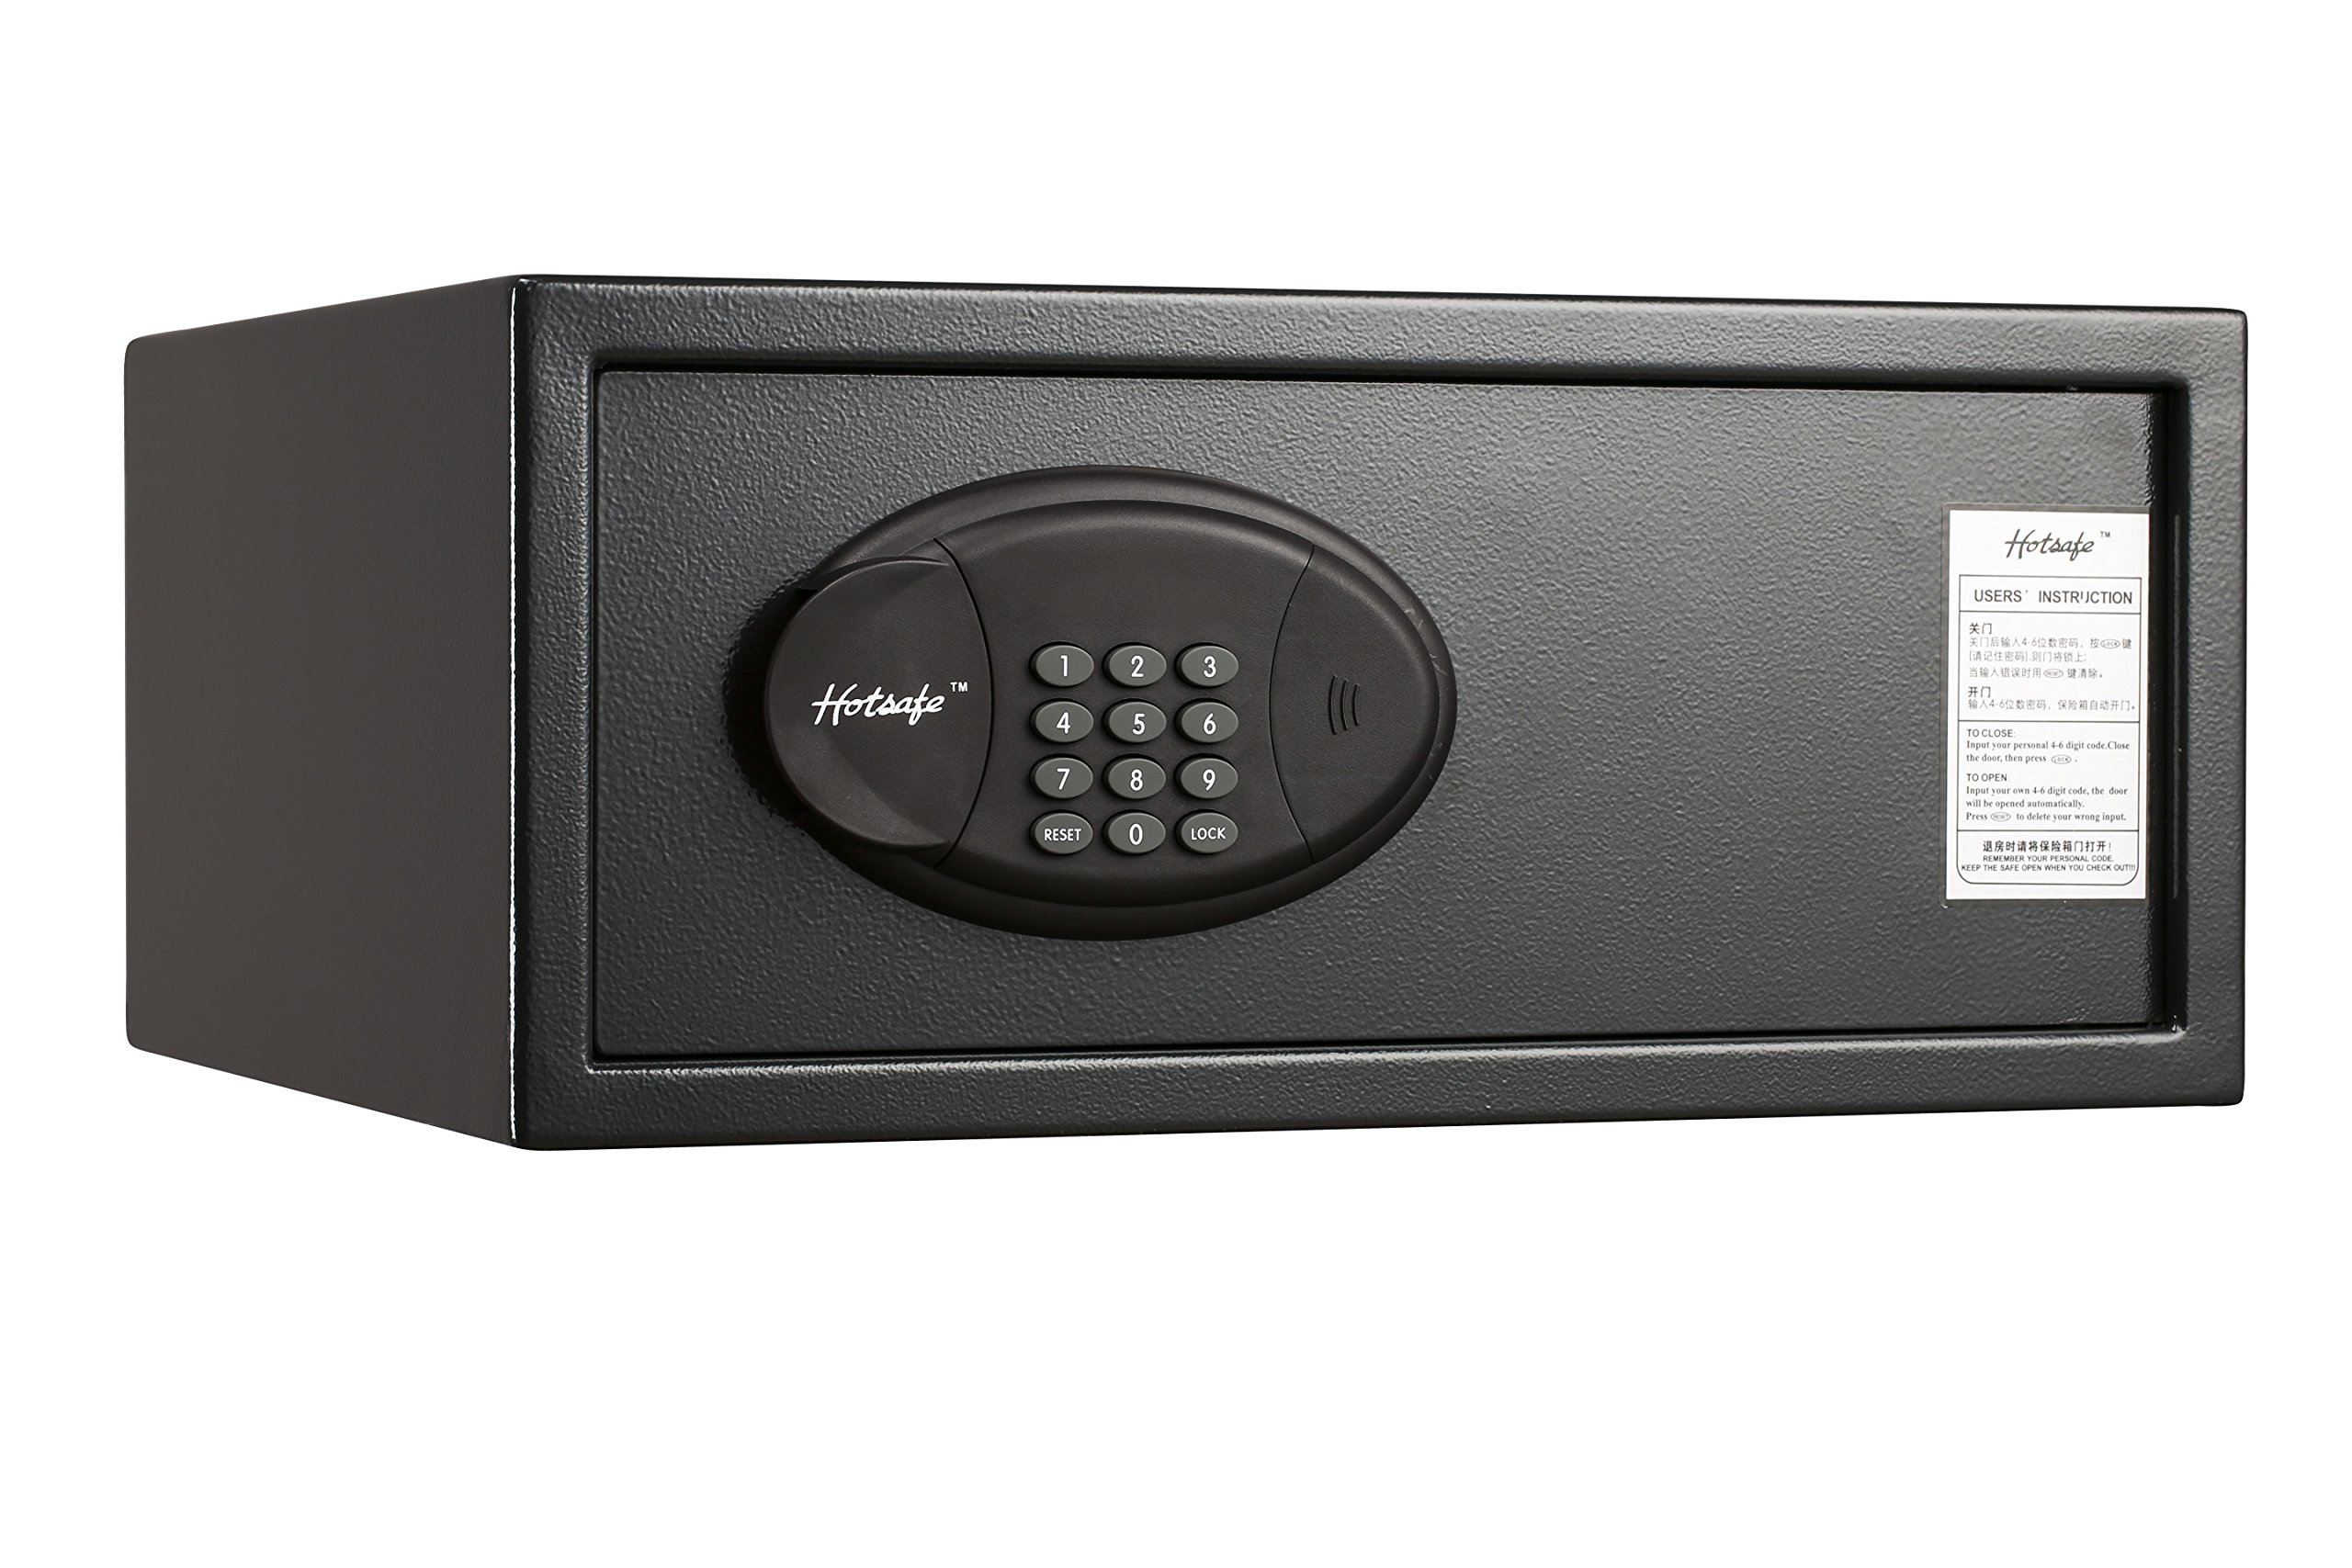 QNN Safe MB2045 Residential and Hotel Safes, Small, Black